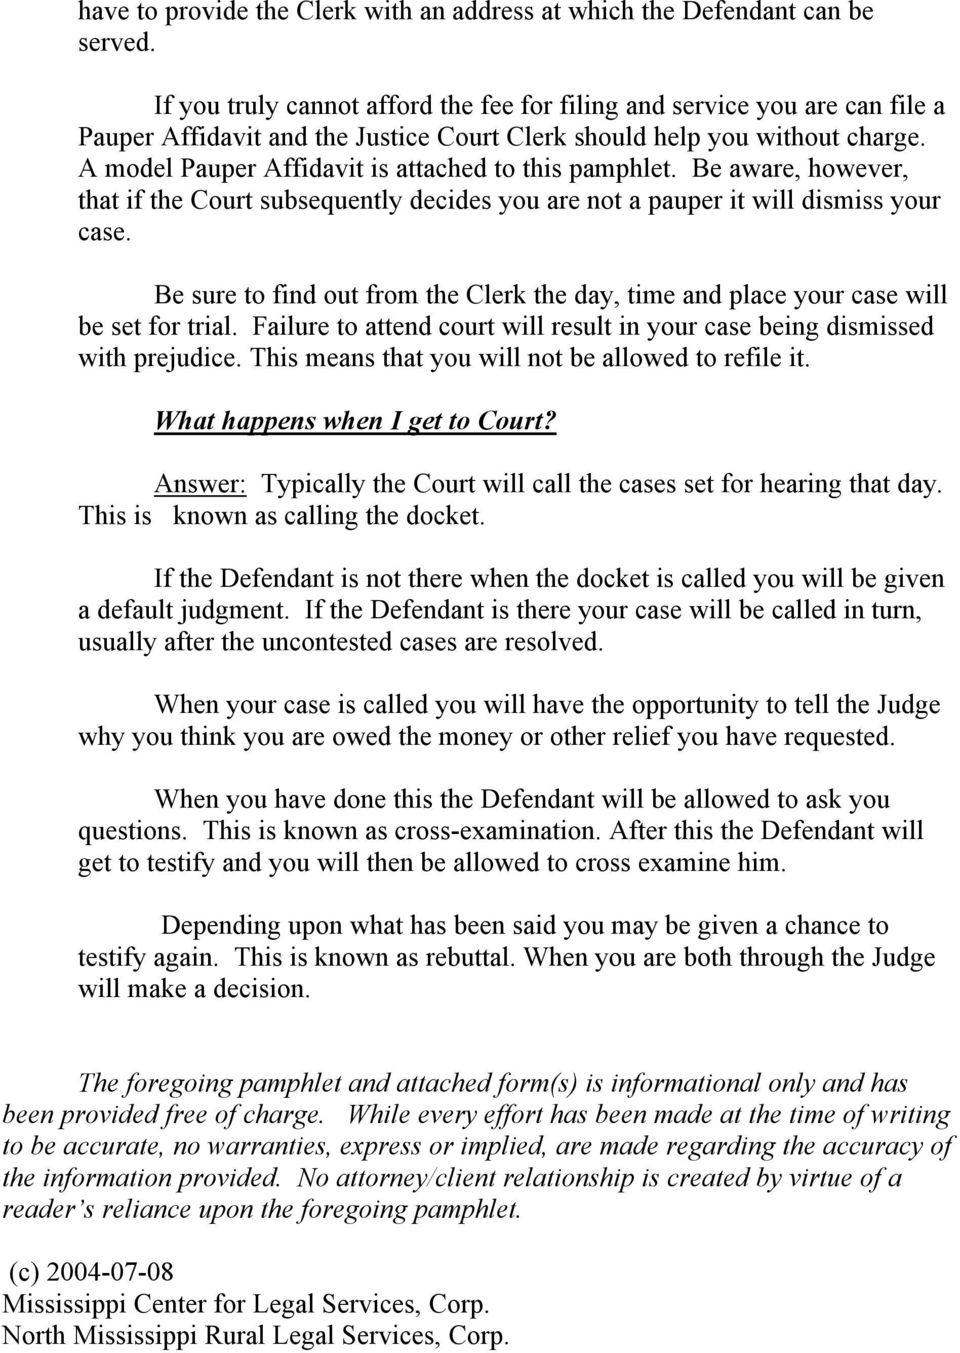 A model Pauper Affidavit is attached to this pamphlet. Be aware, however, that if the Court subsequently decides you are not a pauper it will dismiss your case.